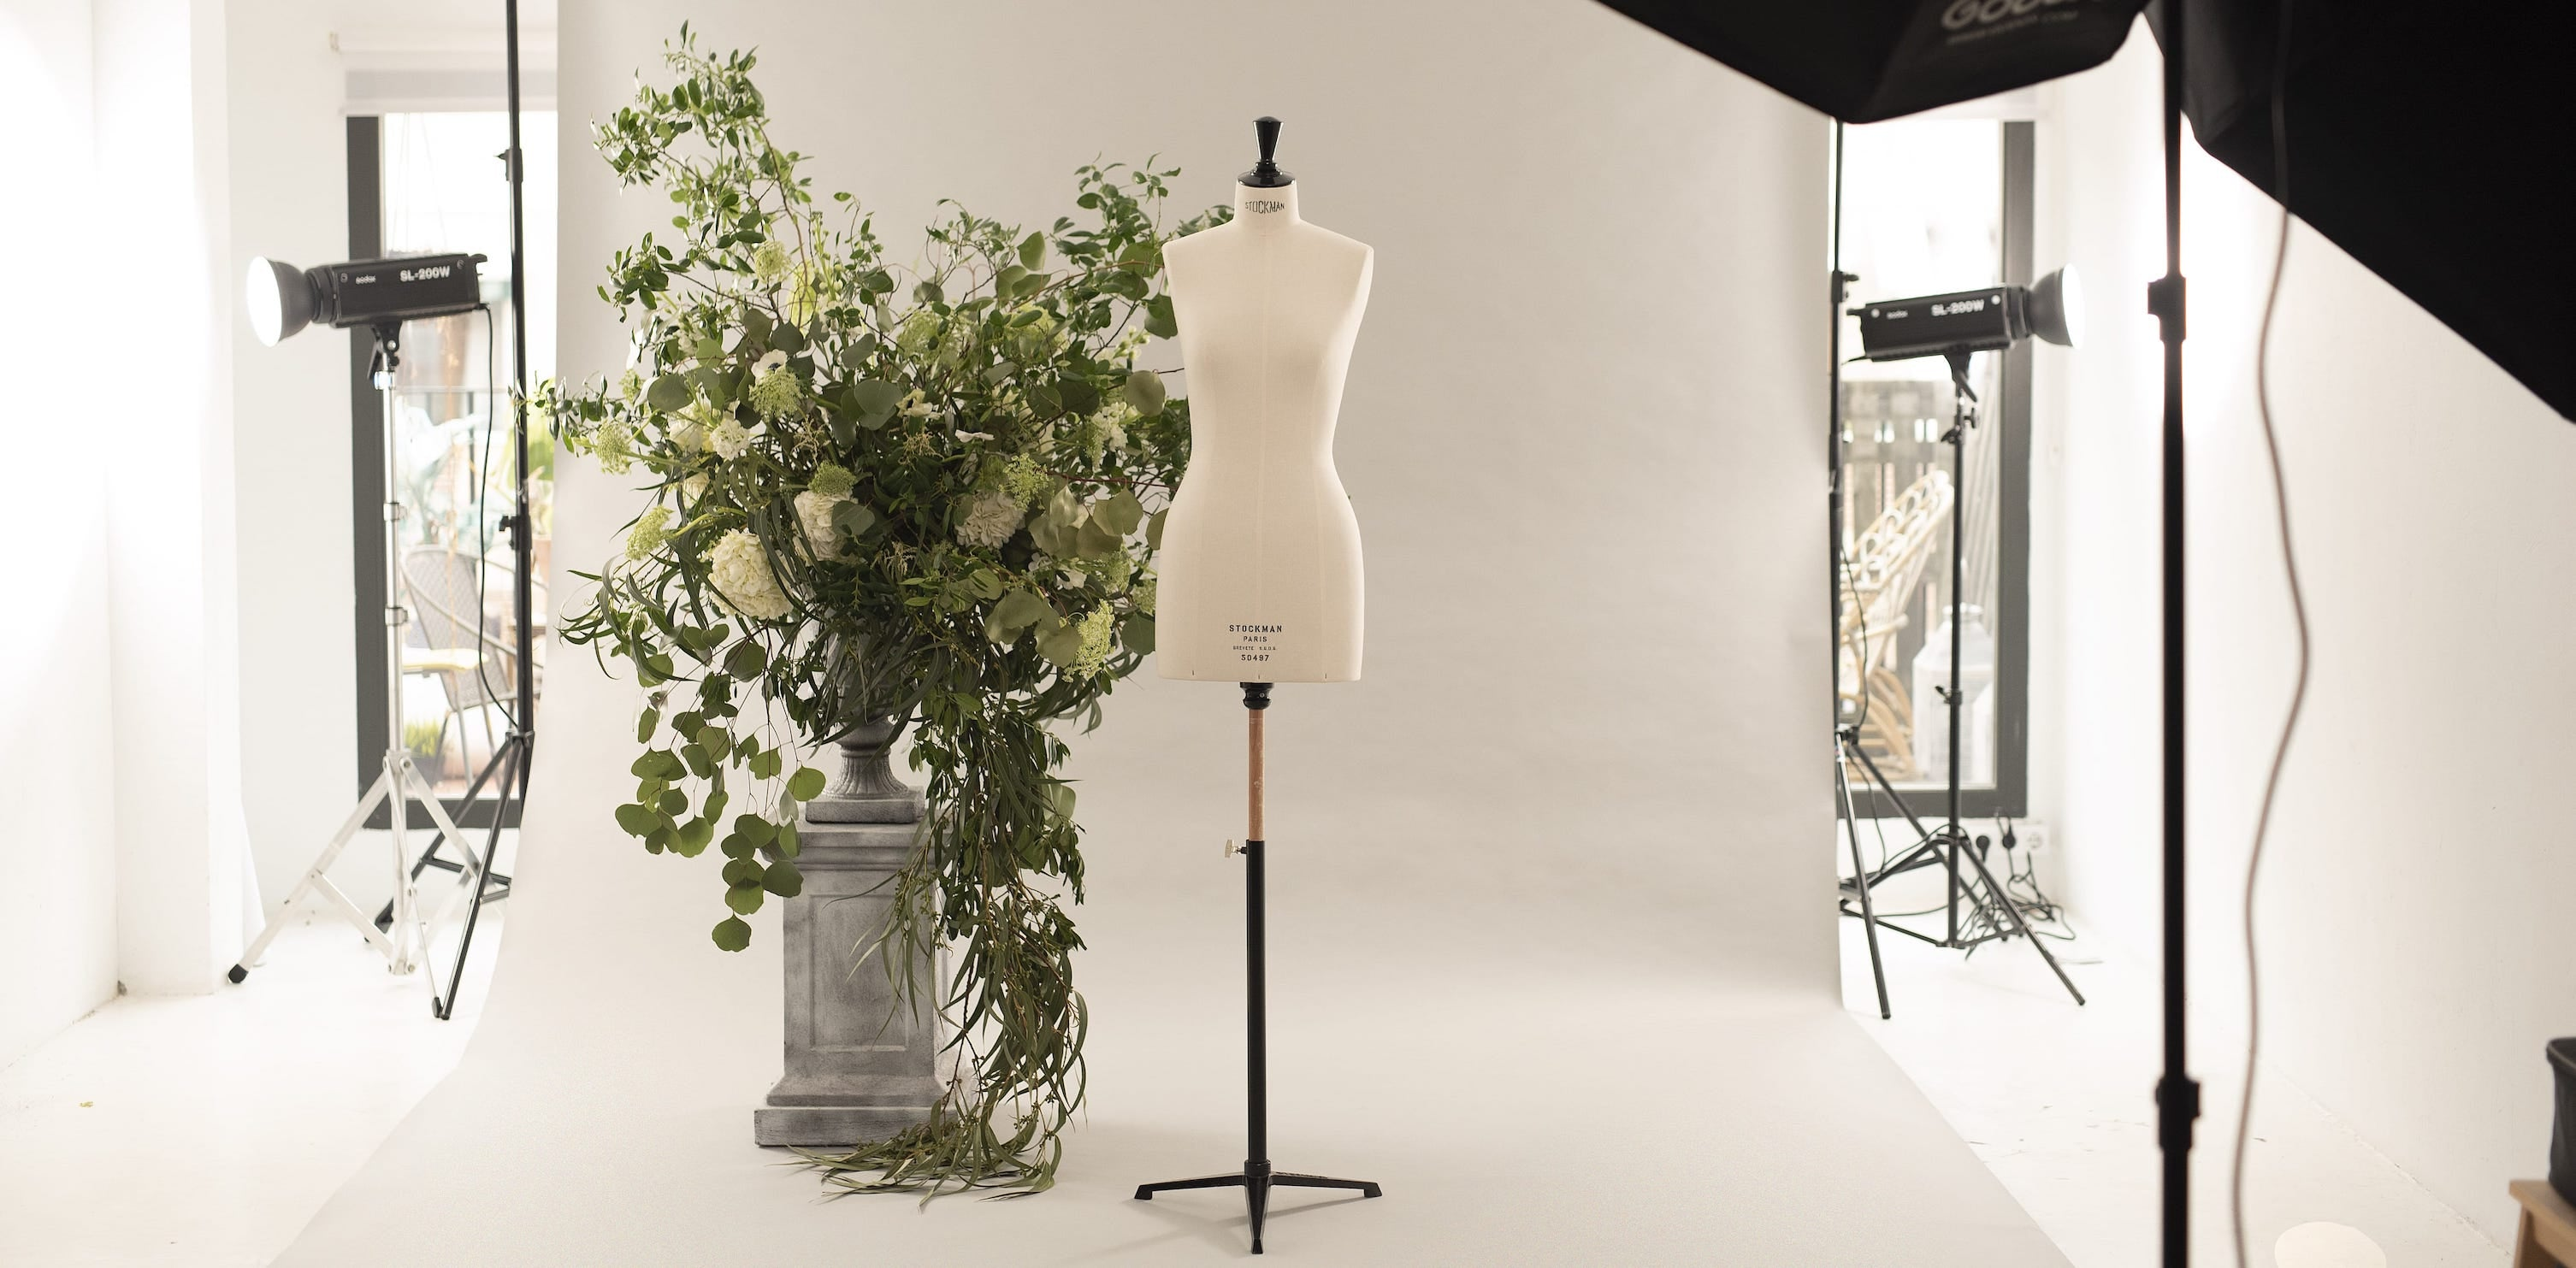 <p>New collection exclusive preview for dealers and bridal shops only</p> <p>Sophie et Voilà was born to accompany brides who want to show their personality dressed in white. Completely made in Spain and with perfect fabrics and finishes, we present a very different, fresh and sexy collection for women with personality.</p>